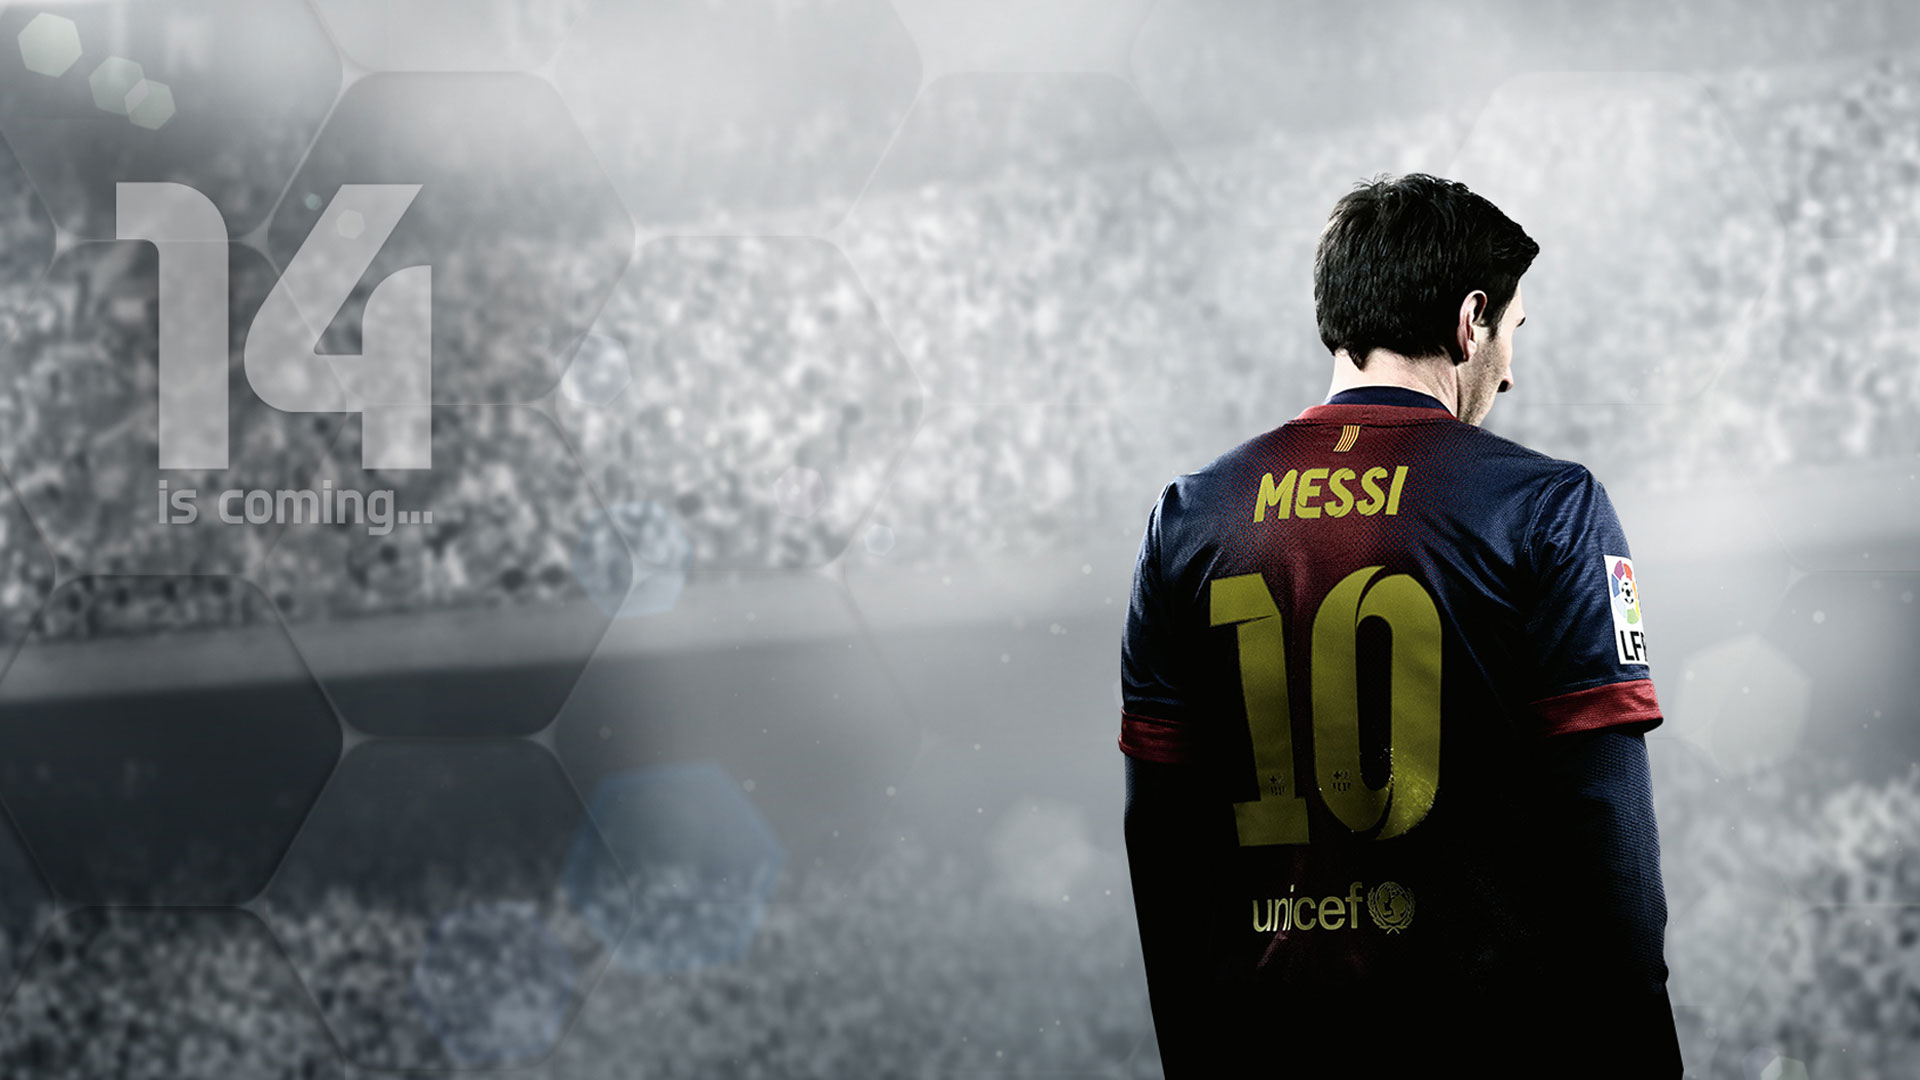 Messi Wallpaper nice